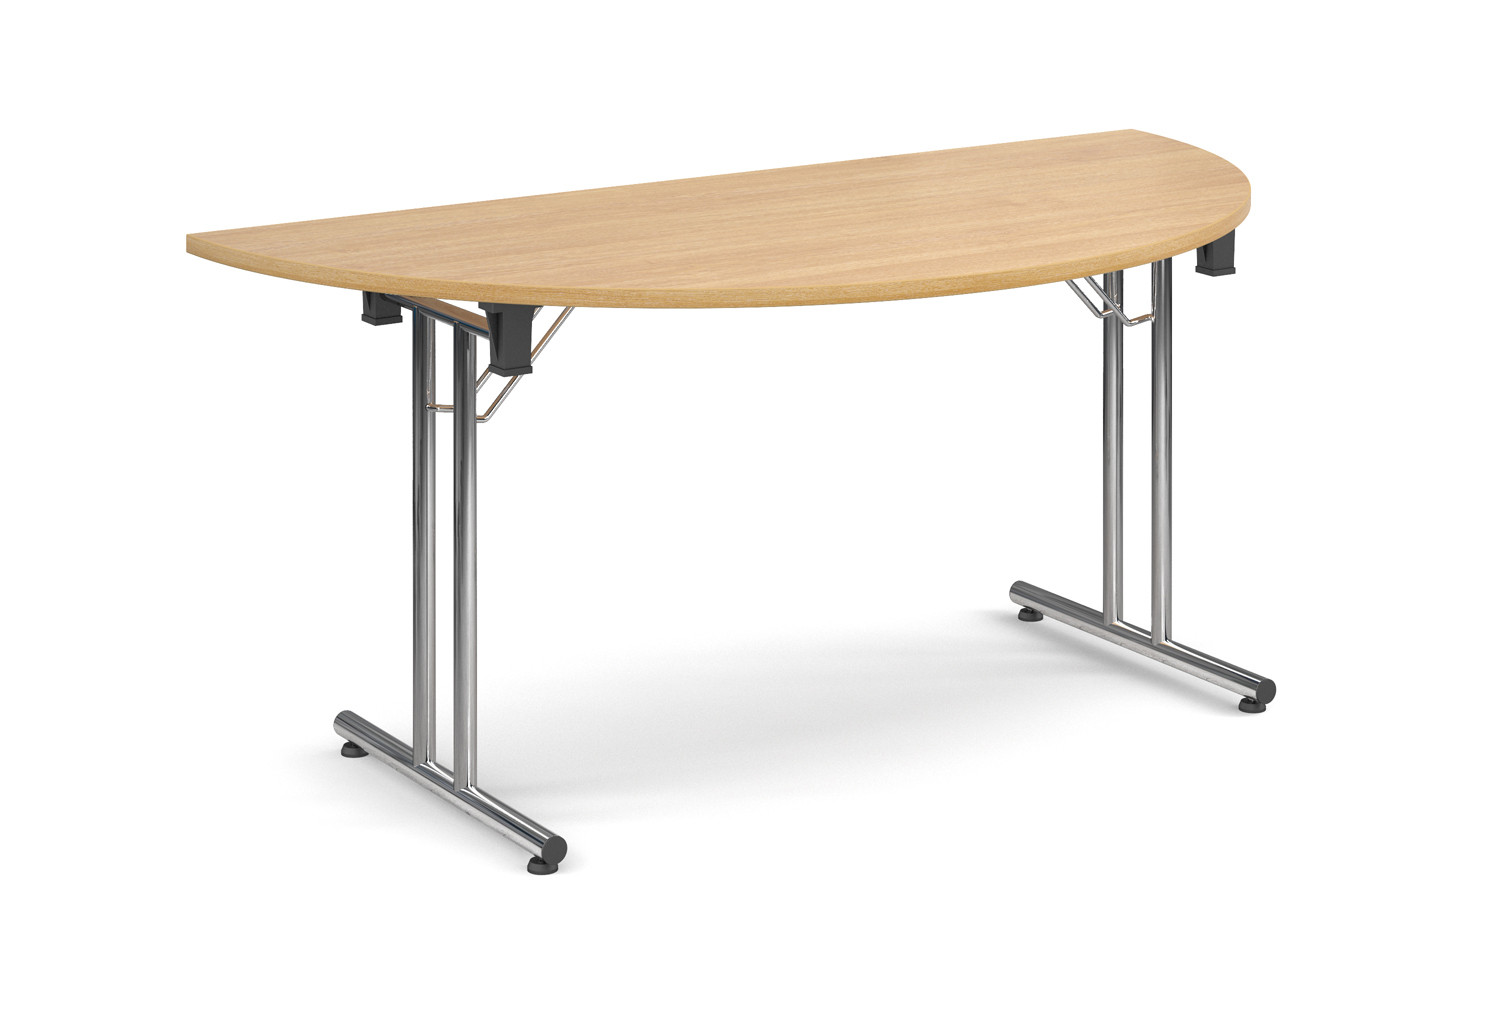 Durand Semi Circular Folding Table